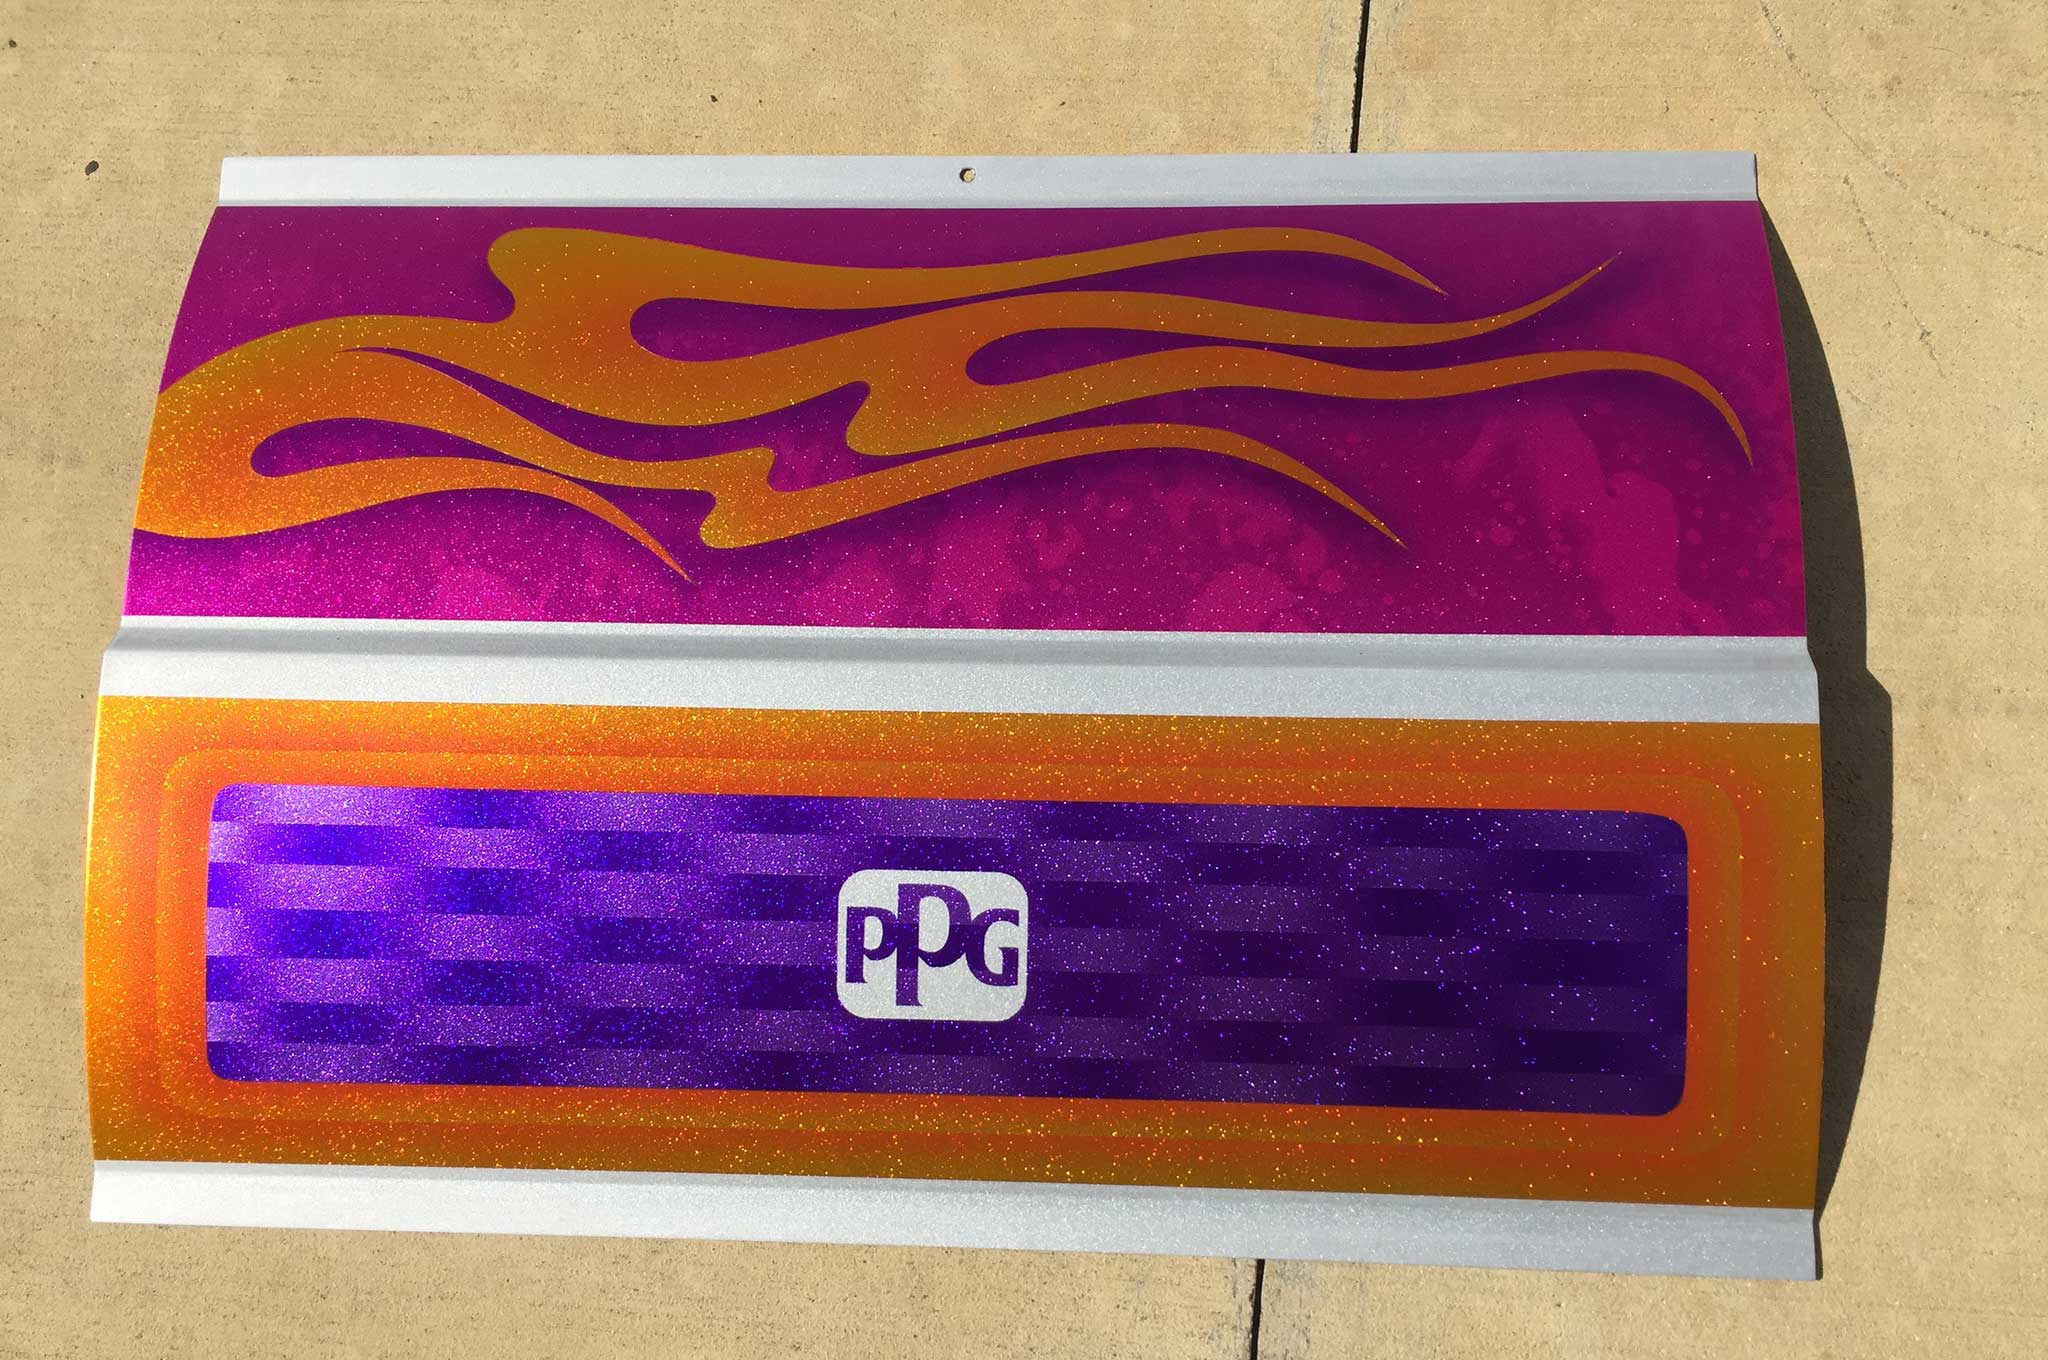 Ppg Waterborne Technology Custom Painted Panel 04 Lowrider